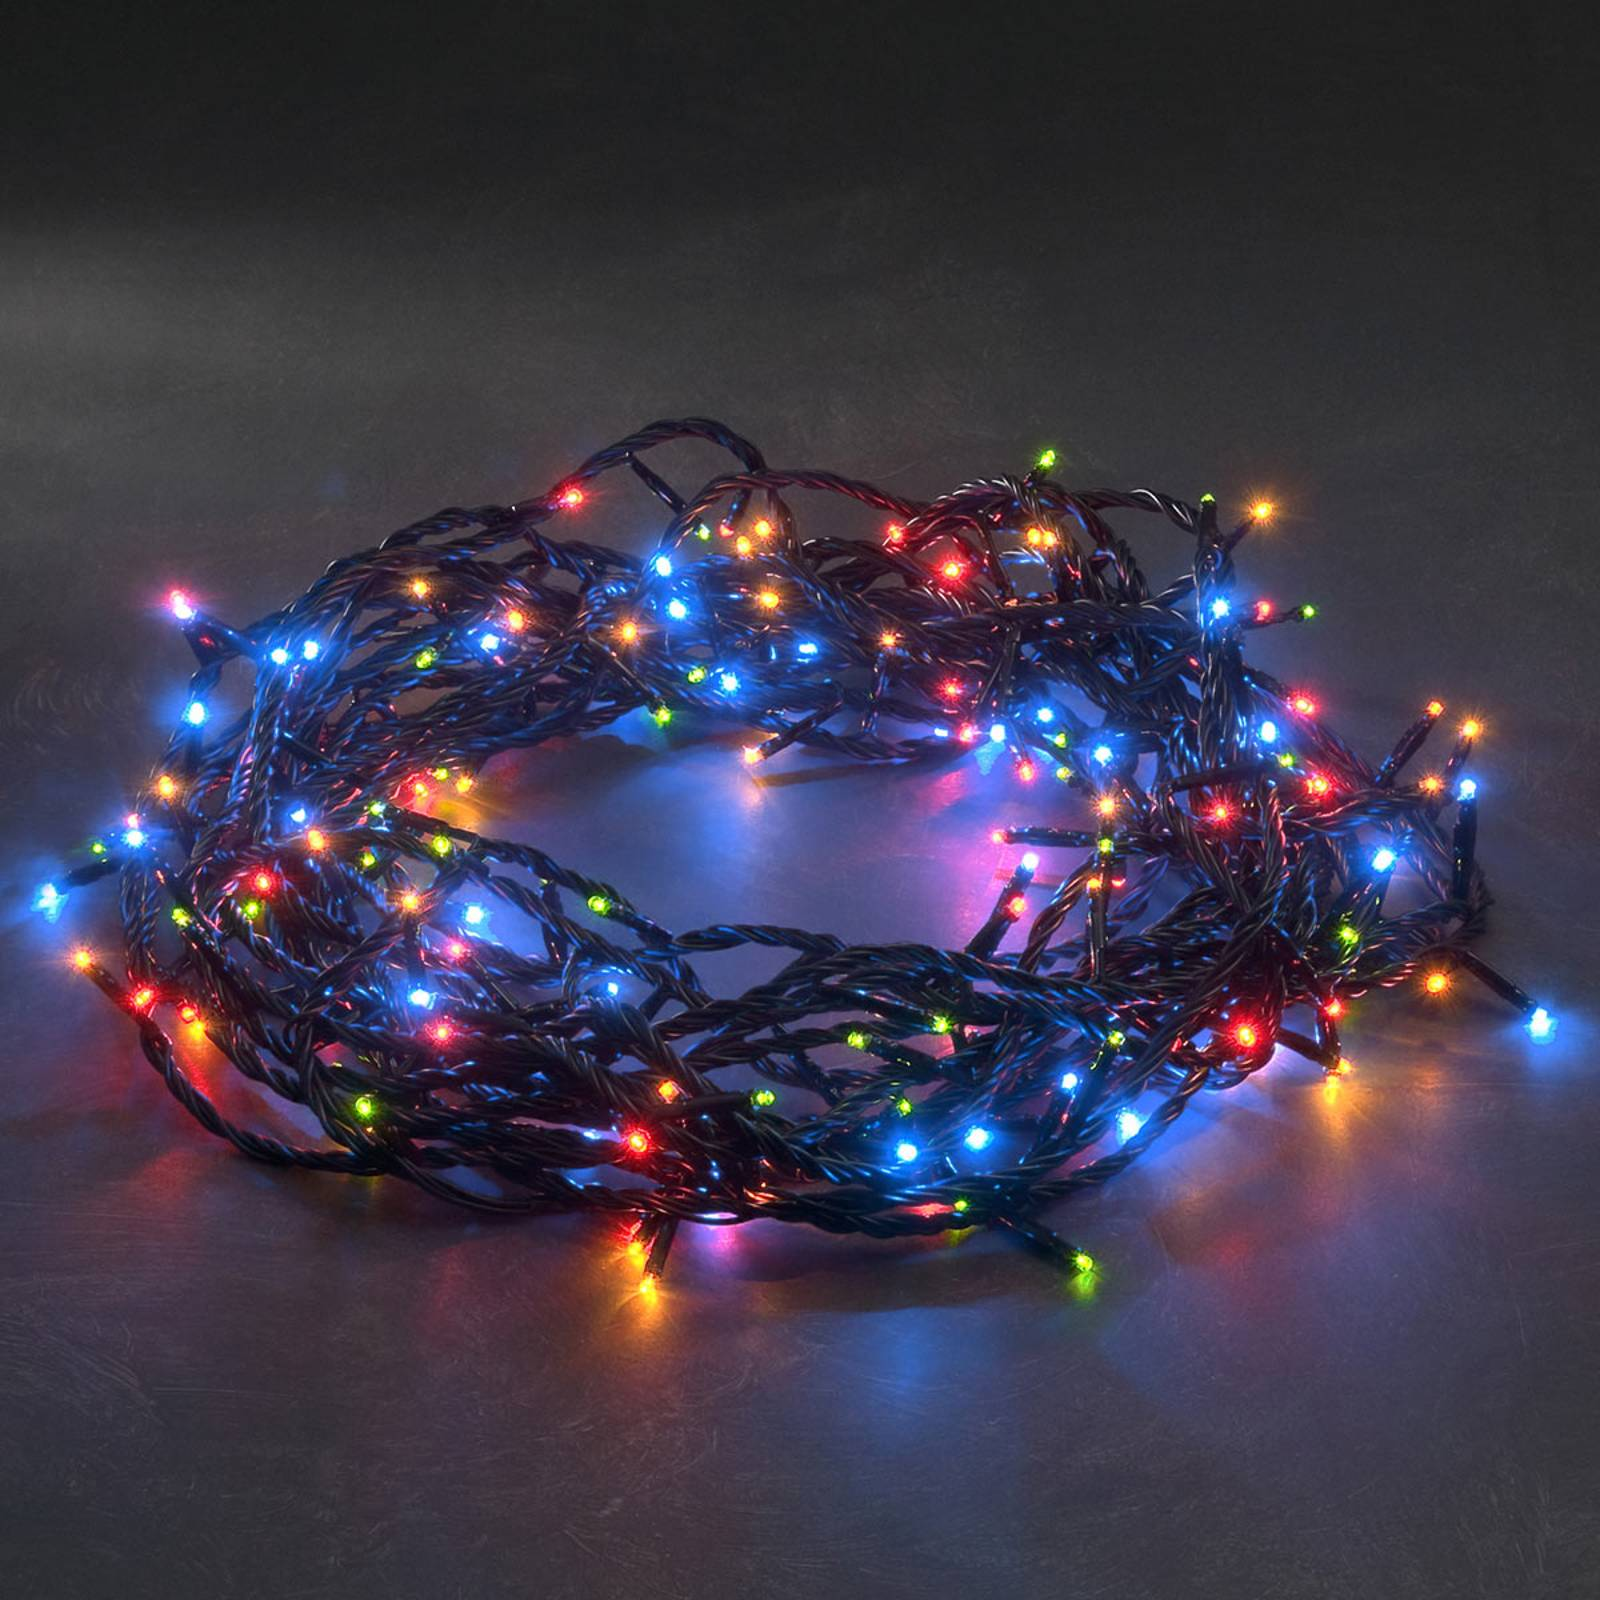 Image of Micro-guirlande LED multicolore 80 lampes 10,5 m 07318303630507